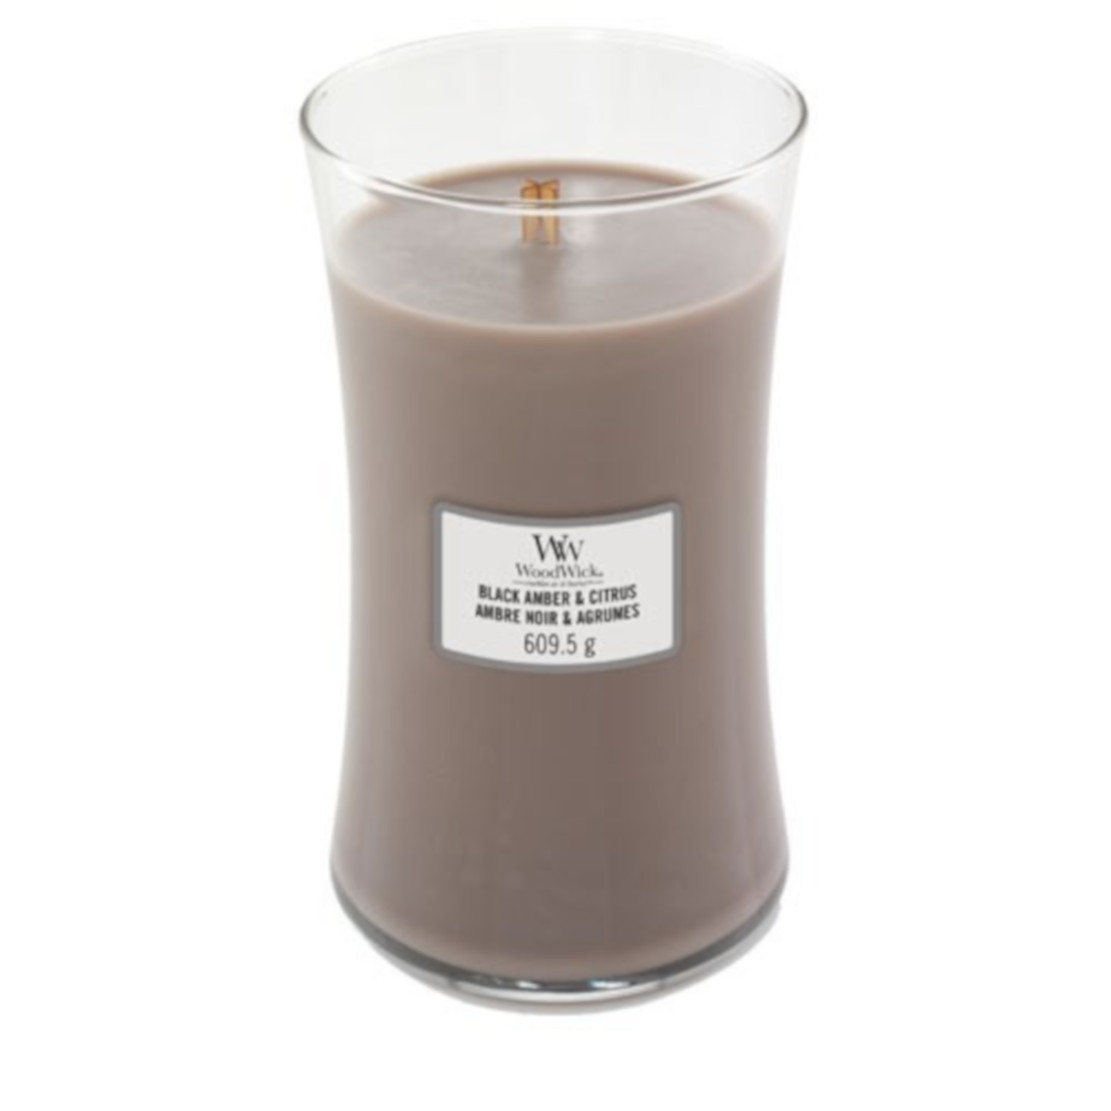 Woodwick Black Amber and Citrus Large Jar Candle